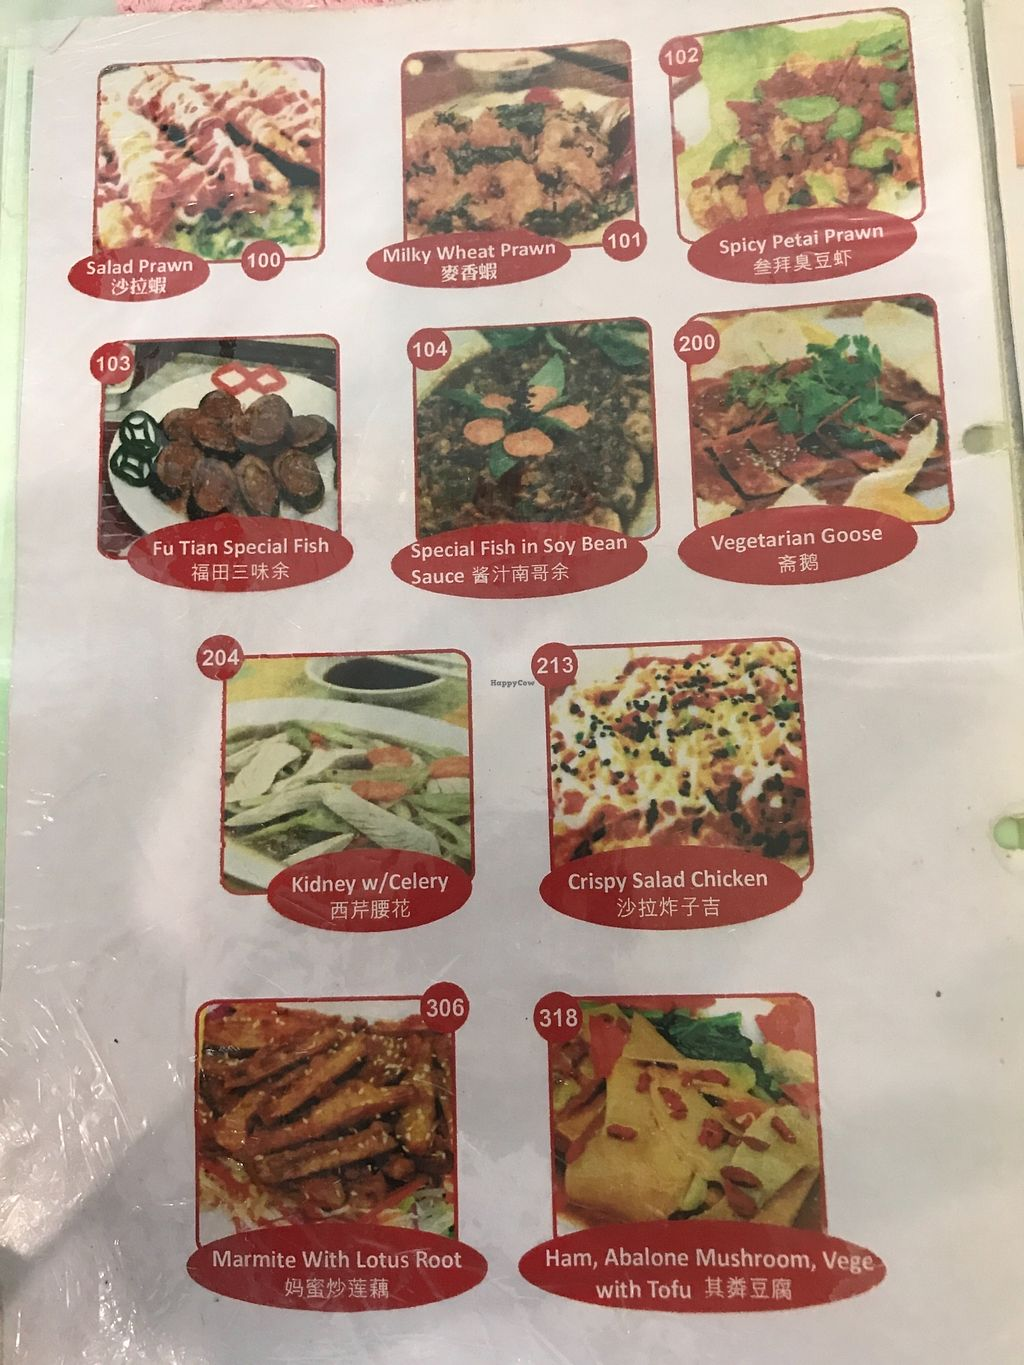 """Photo of Xin Fu Tien Vegetarian Restaurant  by <a href=""""/members/profile/neilmadhvani"""">neilmadhvani</a> <br/>Selected items from the menu (1/2) <br/> December 27, 2017  - <a href='/contact/abuse/image/12028/339638'>Report</a>"""